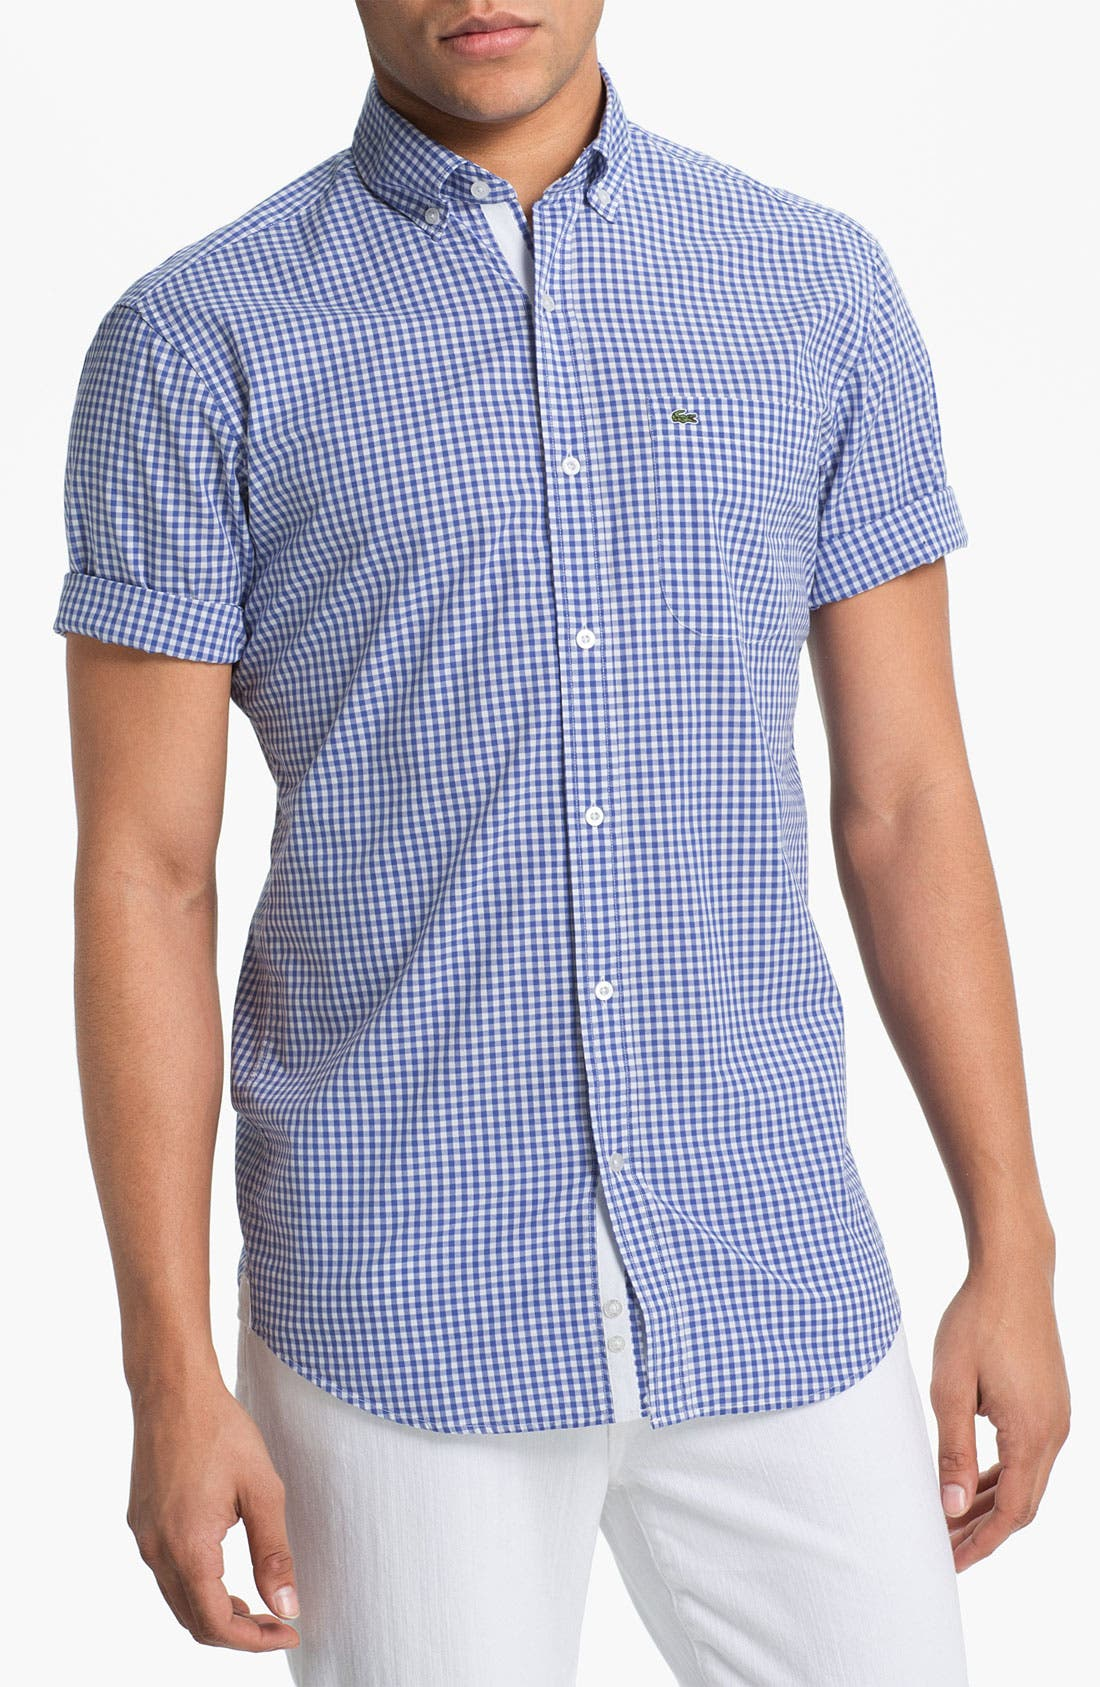 Alternate Image 1 Selected - Lacoste Short Sleeve Button Down Shirt (Big)